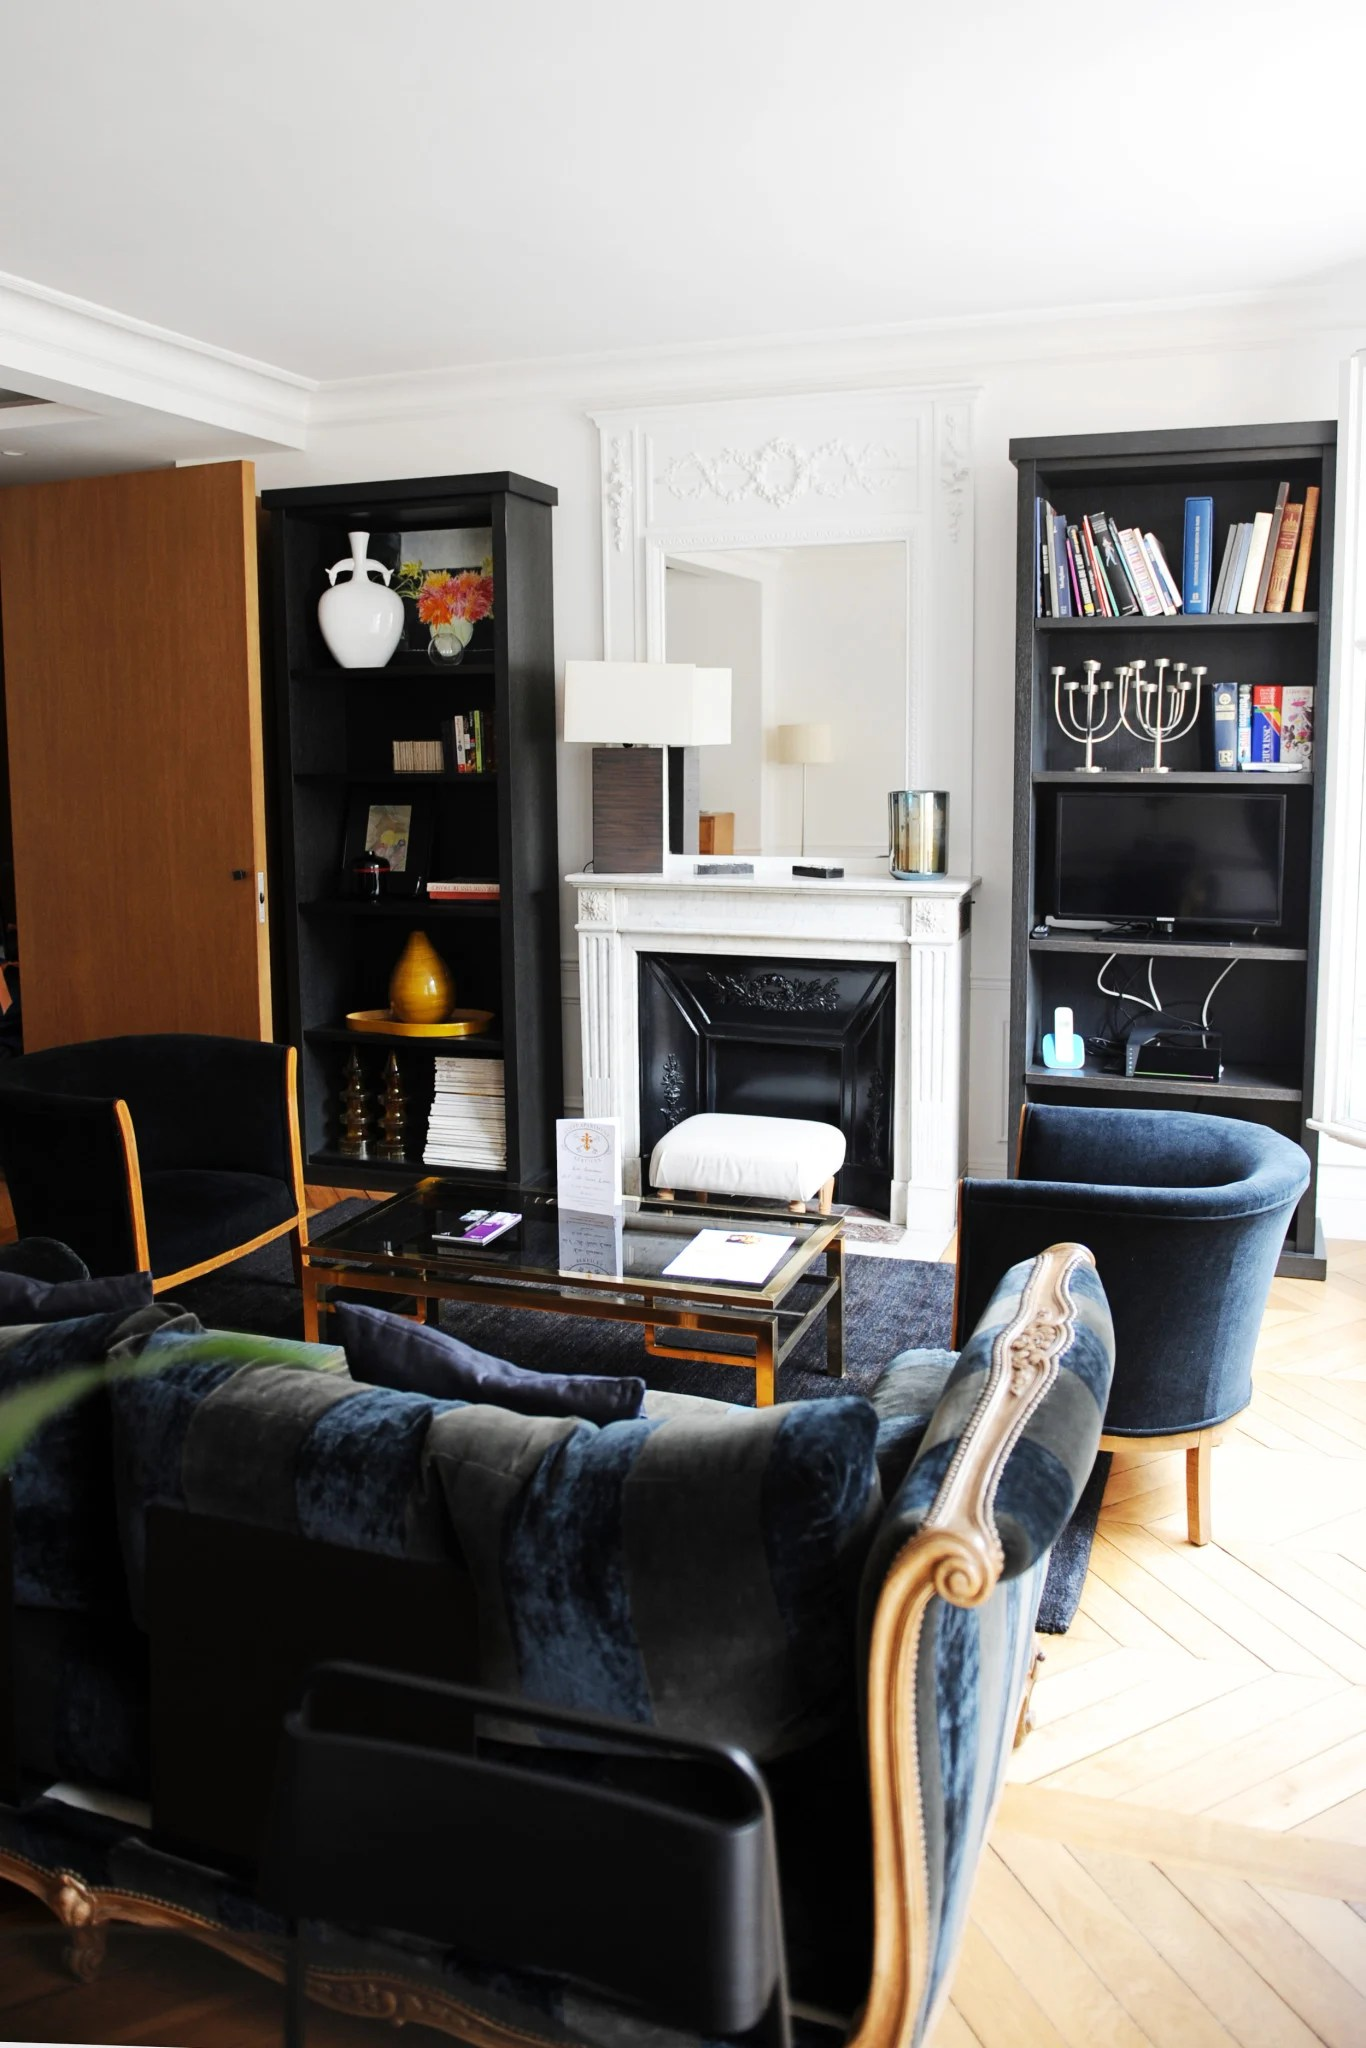 Where To Stay In Paris Guest Apartment Services And The